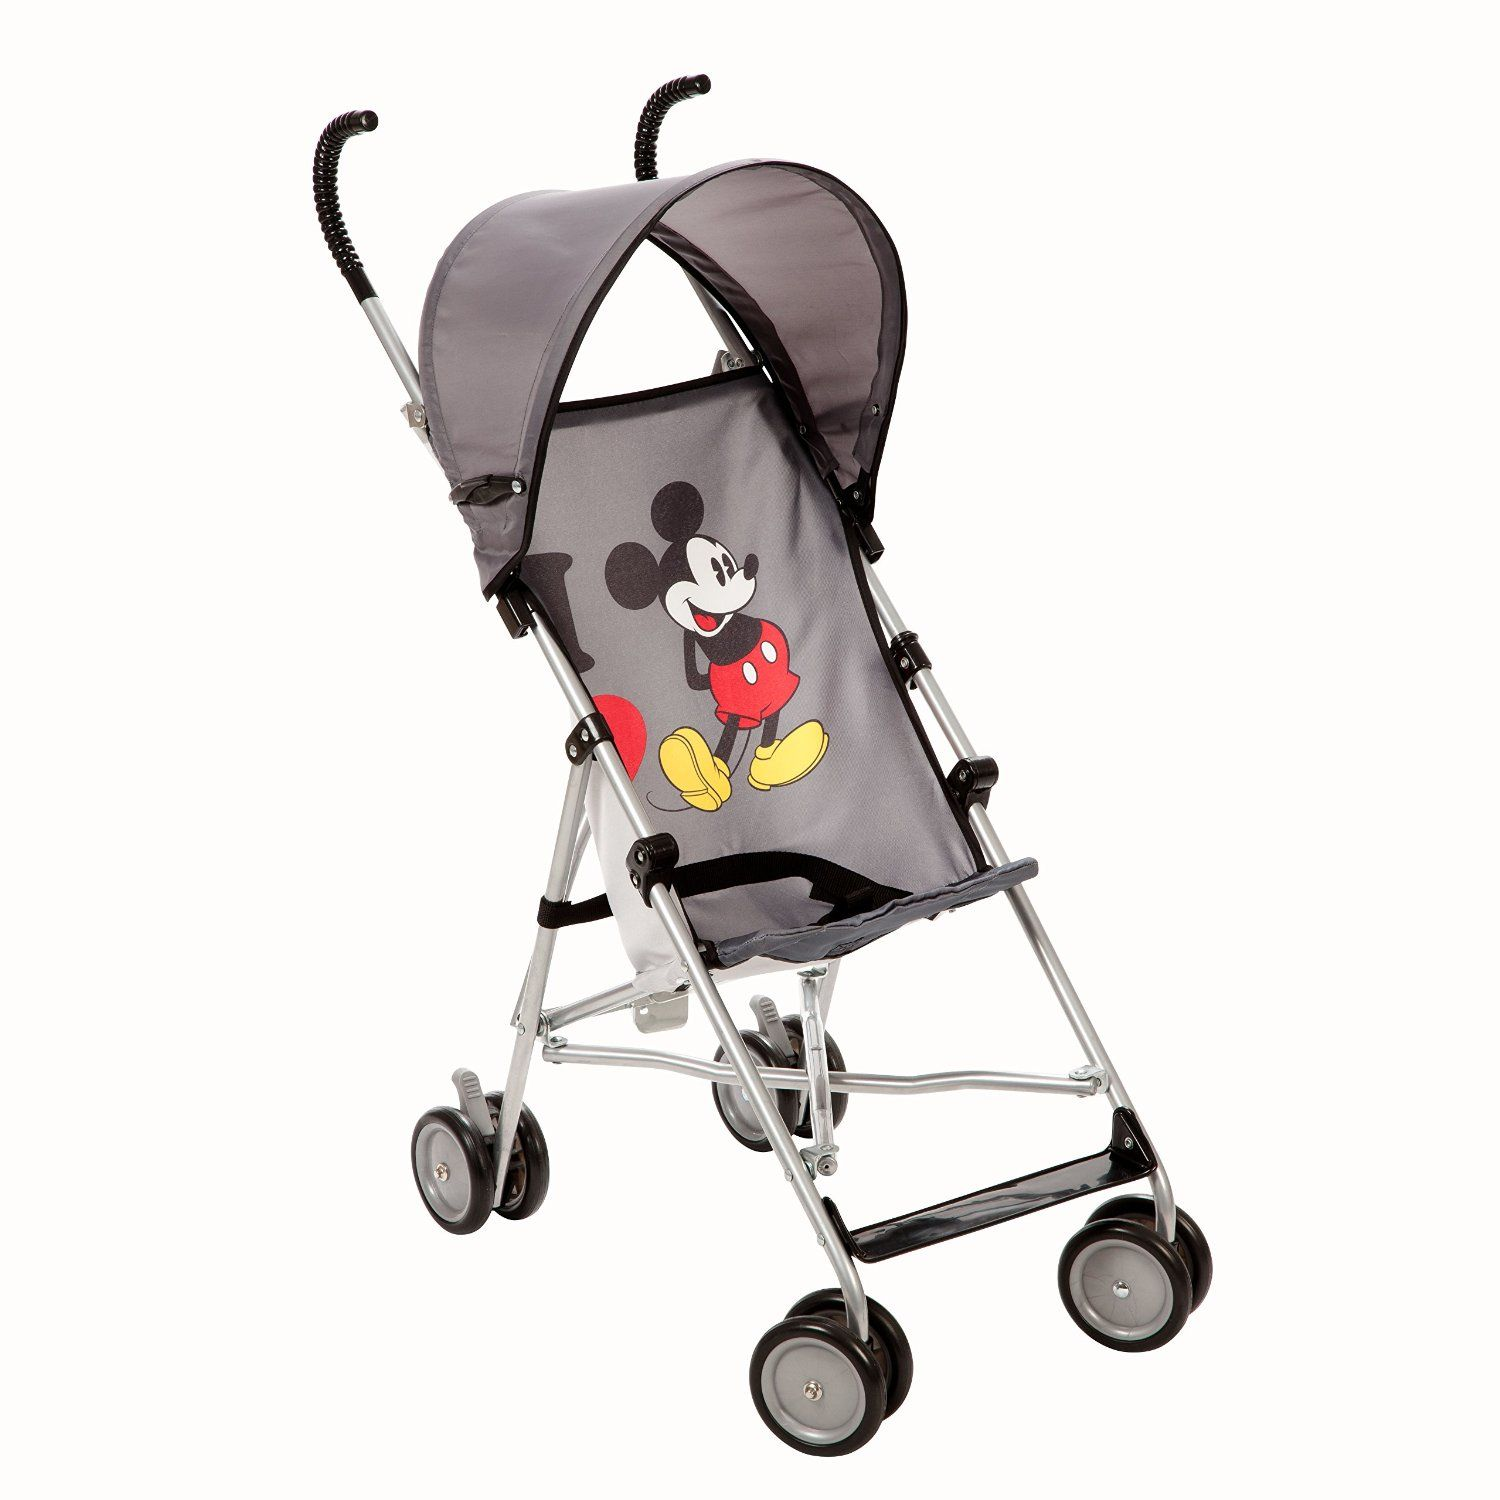 Disney Prams Mickey Mouse Google Search Strollers And